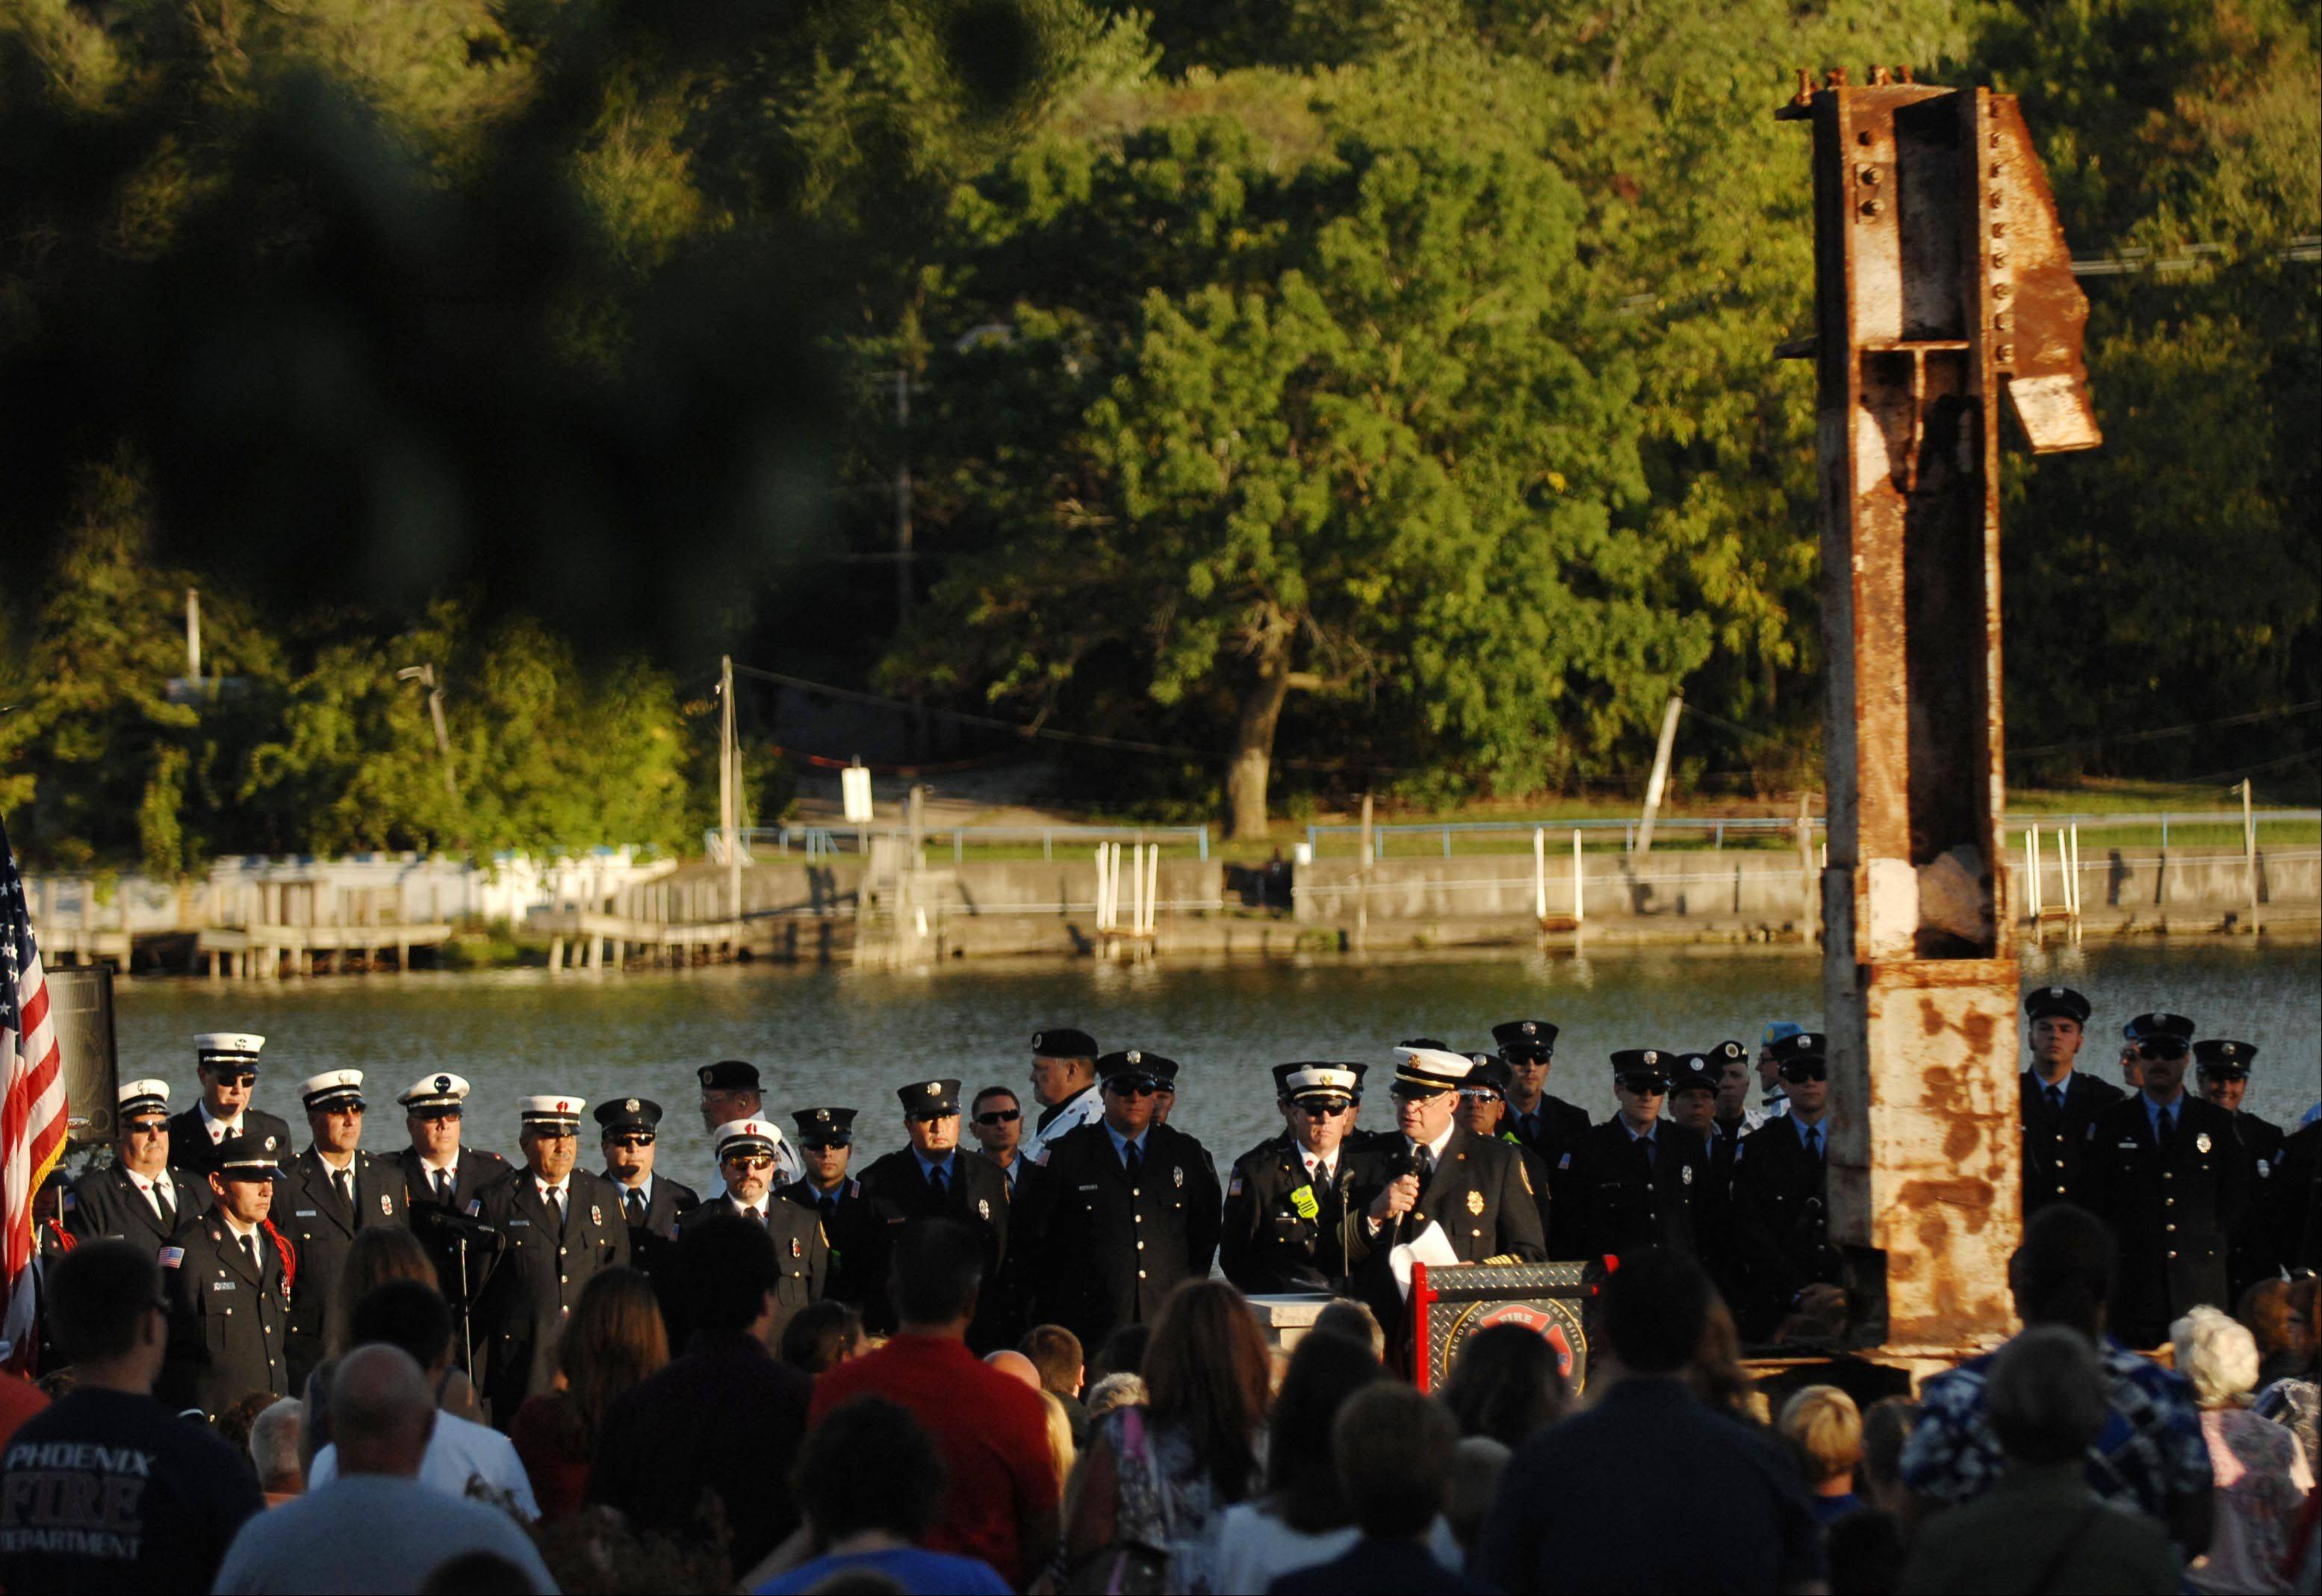 Chief Kevin Rynders of the Algonquin-Lake in the Hills Fire Protection District speaks to the crowd on the shore of the Fox River Tuesday in Algonquin during a Firefighter Memorial Dedication of a 5,000 pound iron beam from the World Trade Center.